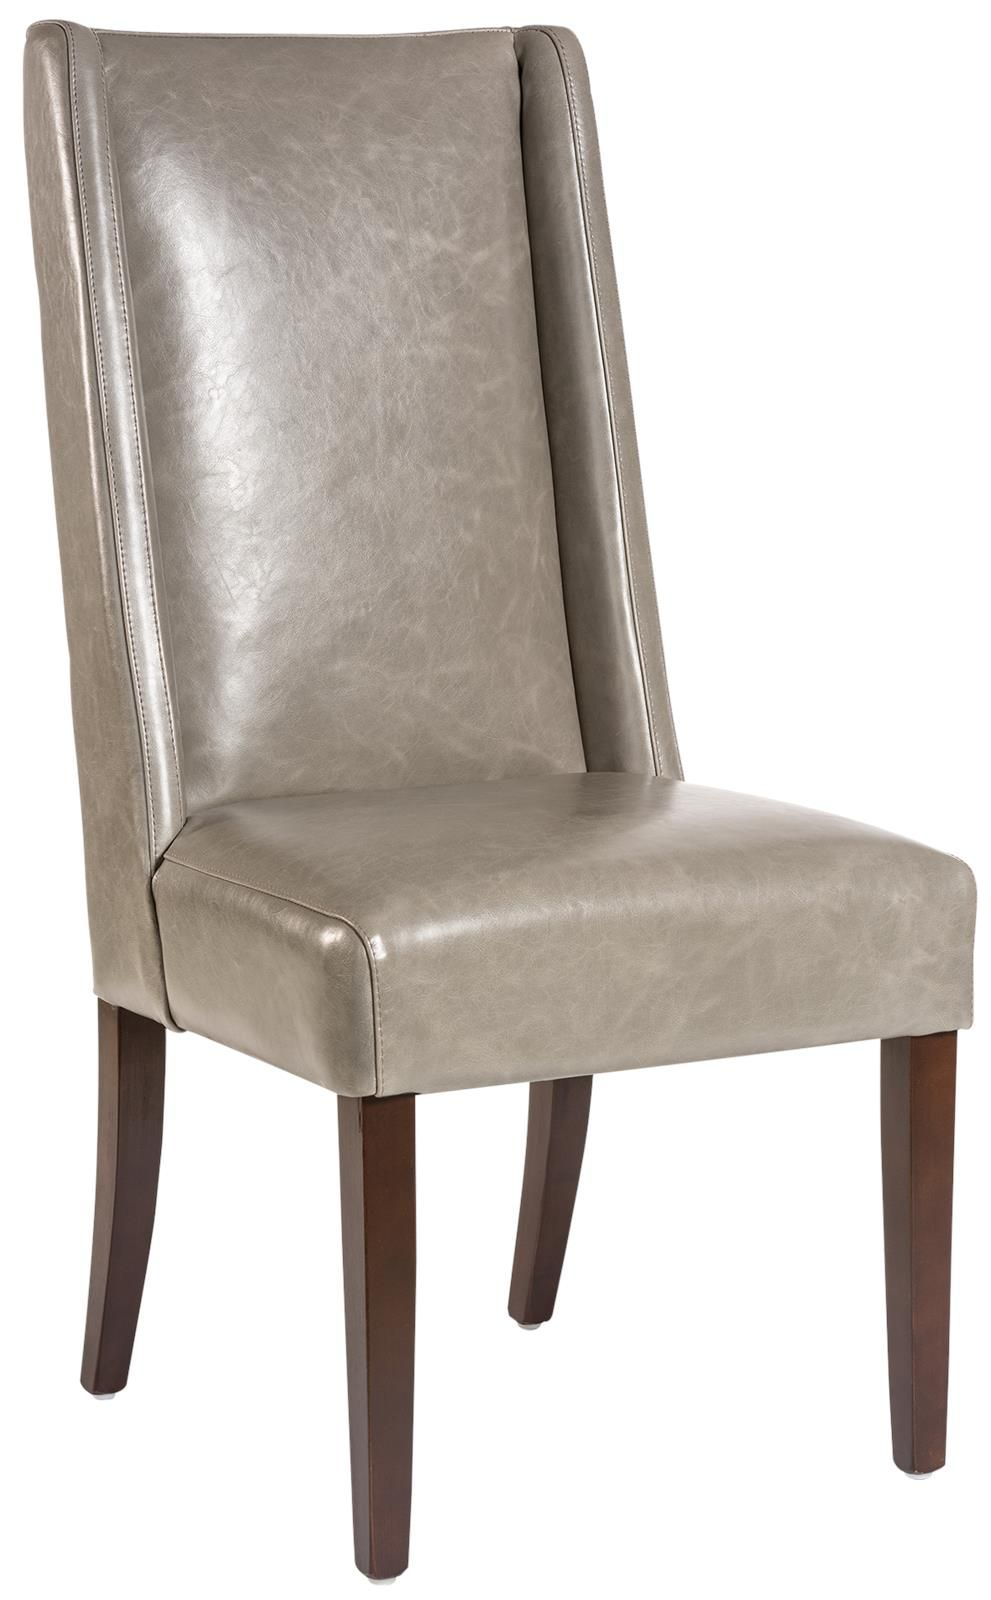 Leather Dining Chair Gray London Fog Leather Wood Walnut Modern